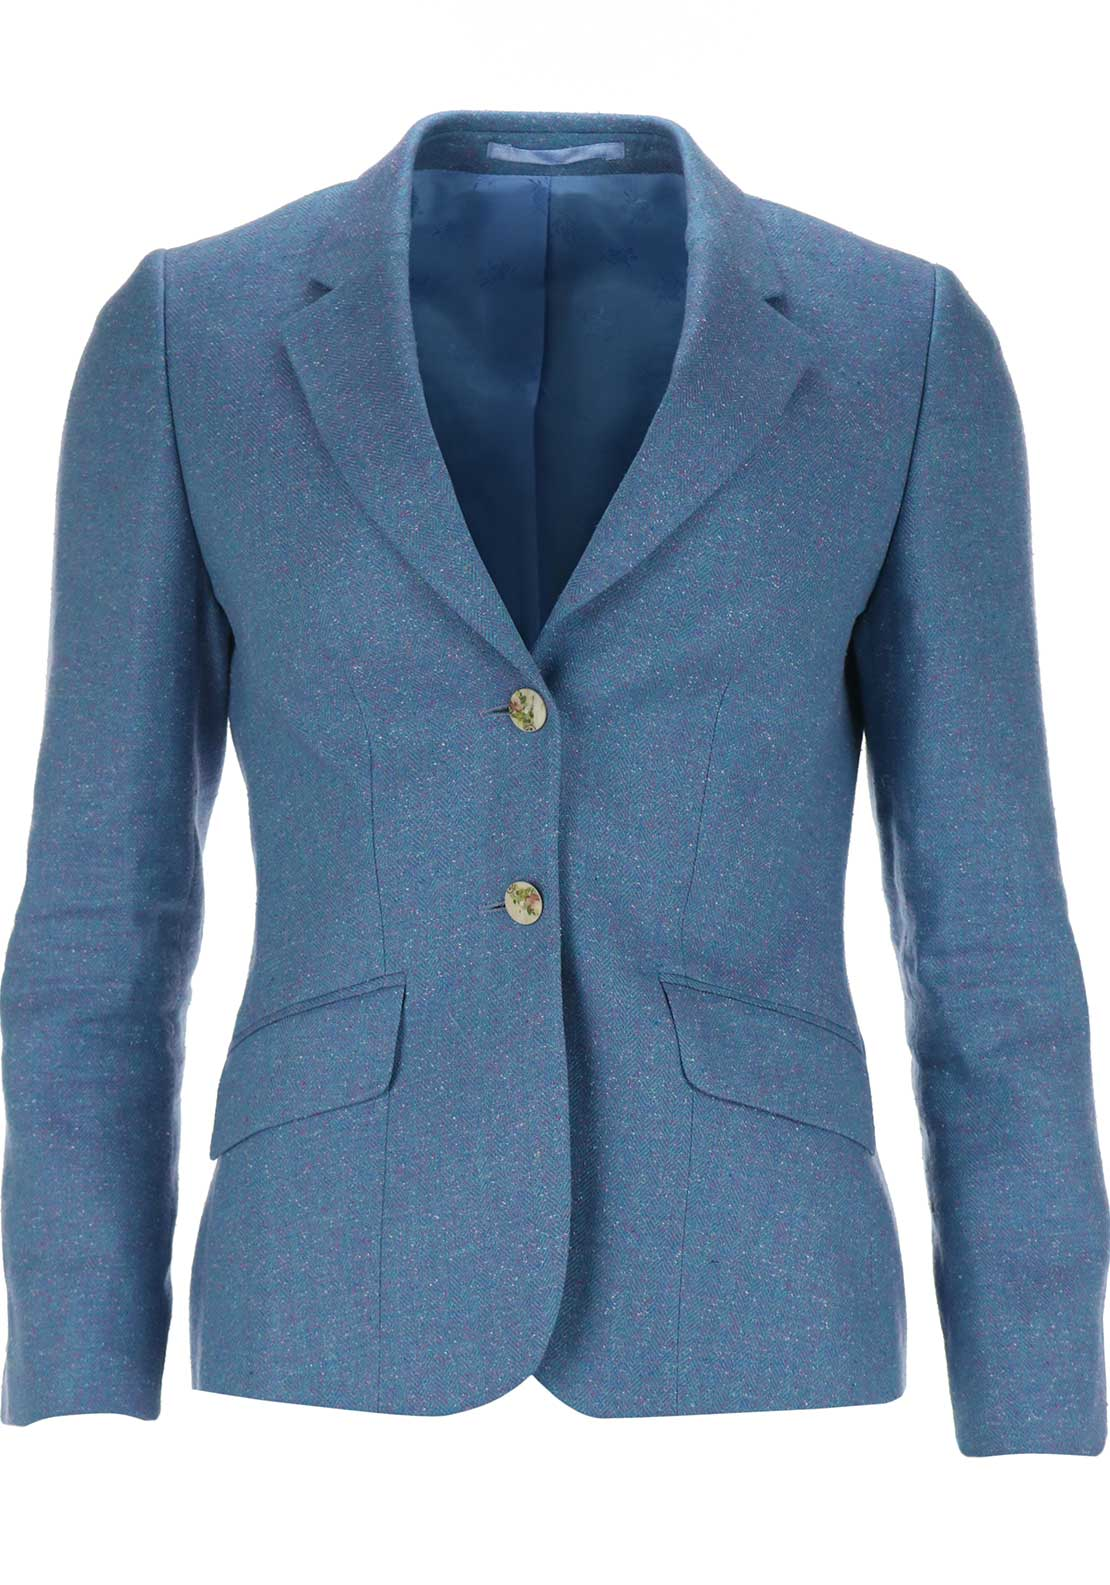 Magee 1866 Womens Alicia Linen and Silk Tweed Blend Blazer Jacket, Blue